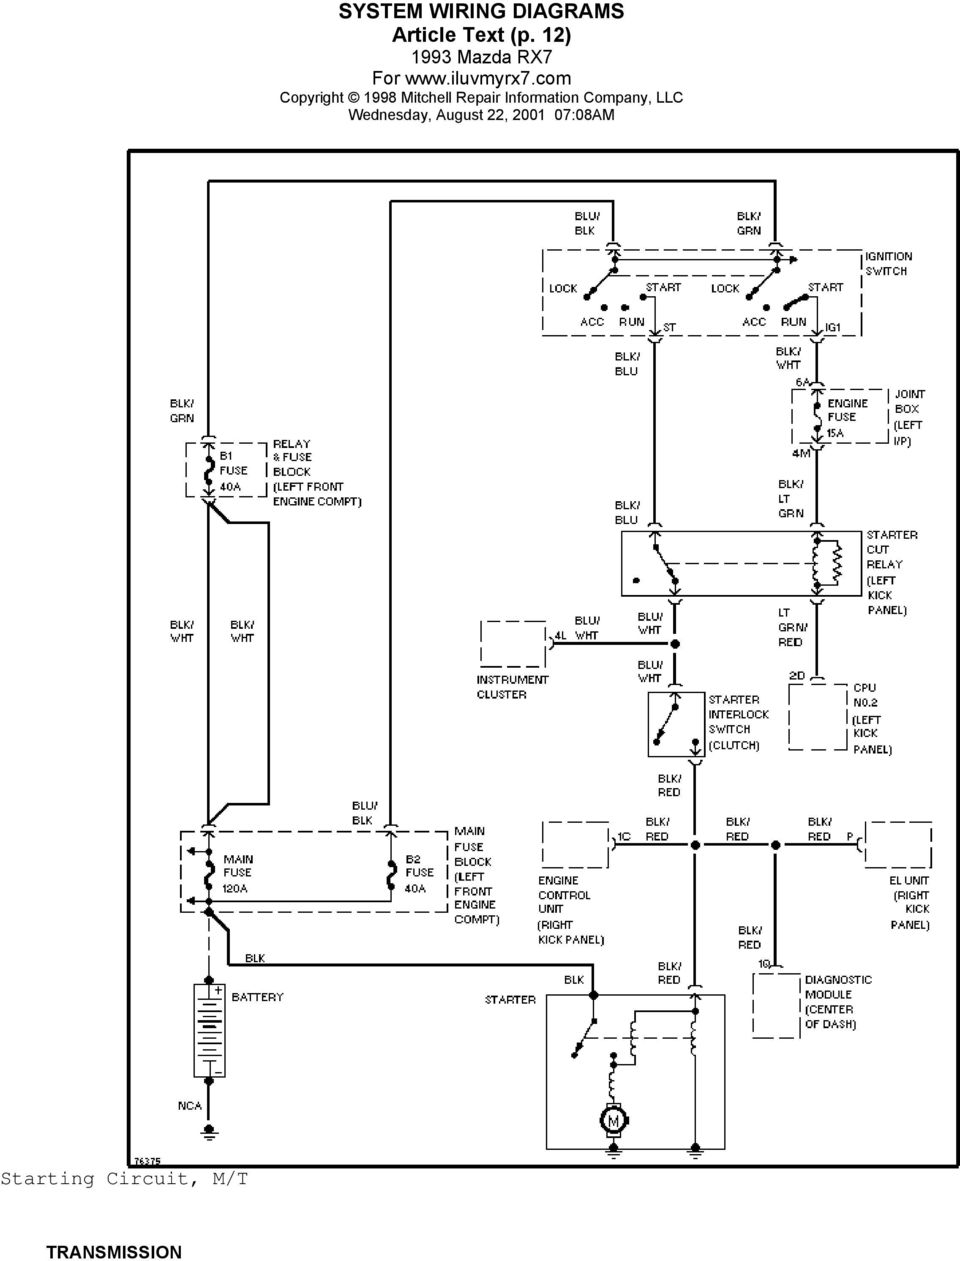 hight resolution of 14 system wiring diagrams article text p 13 transmission circuit wiper washer